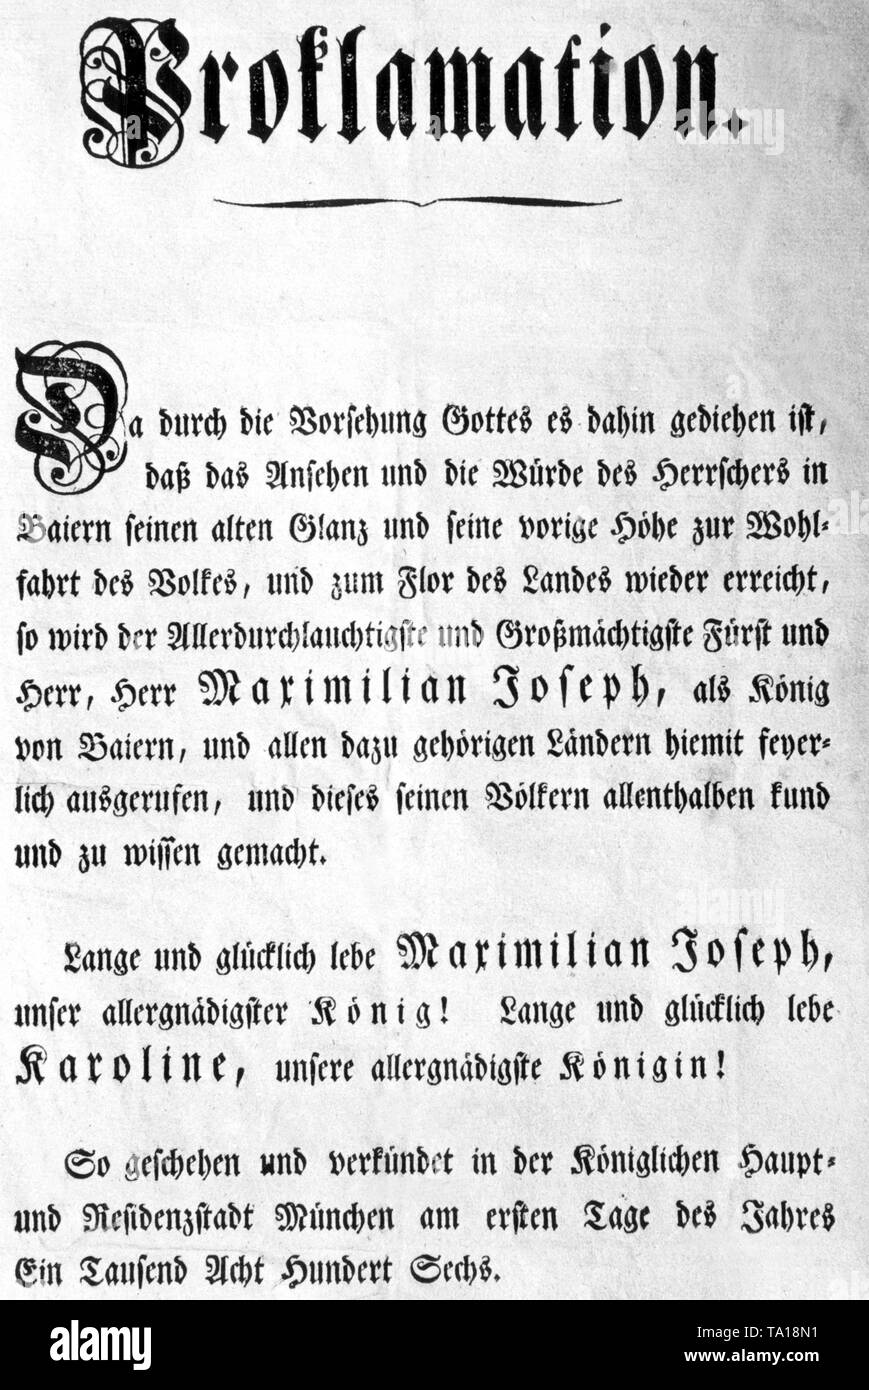 This photograph shows the proclamation announcing the establishment of the Kingdom of Bavaria and the appointment of the former Elector Maximilian Joseph as King of Bavaria. Together with 16 southern German princes, Bavaria resigned from the Reich and founded the Rhine Confederation in Paris under Napoleon's protectorate, which was followed by 20 other German territories until 1811. The political center of this group directed against Vienna is Munich. - Stock Image